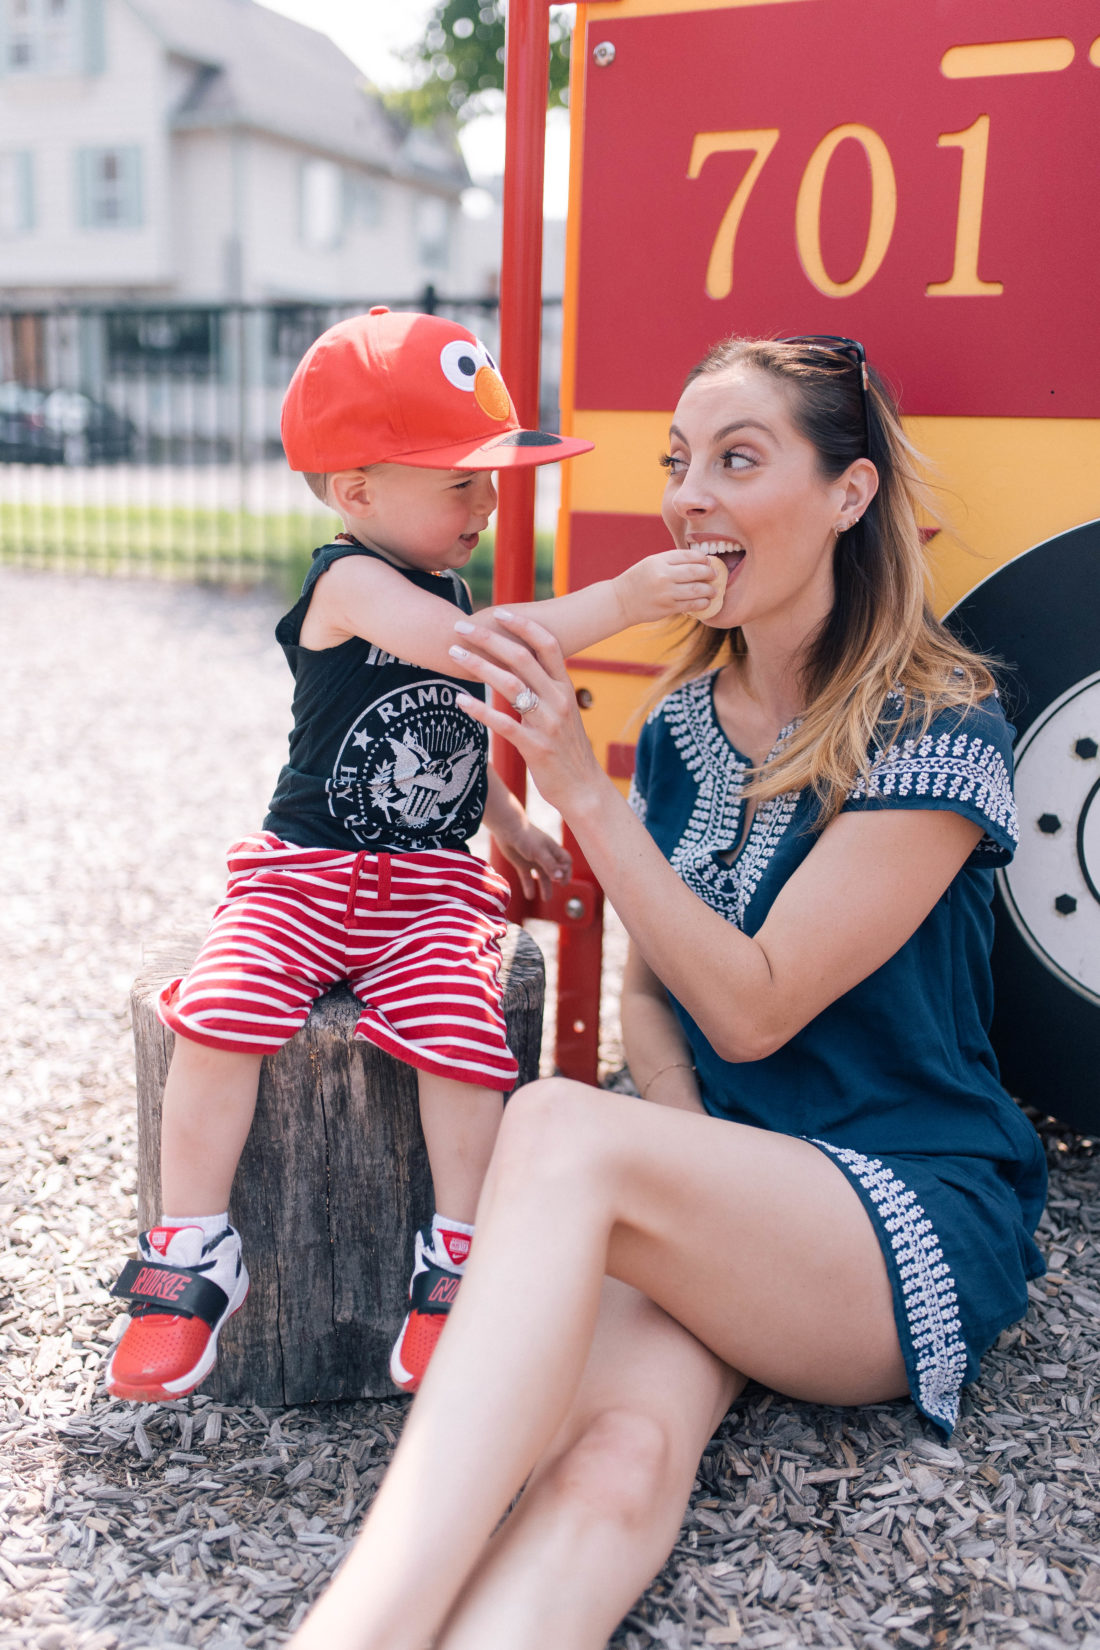 Major Martino feeds his Mom a bite of snack on the playground in Connecticut